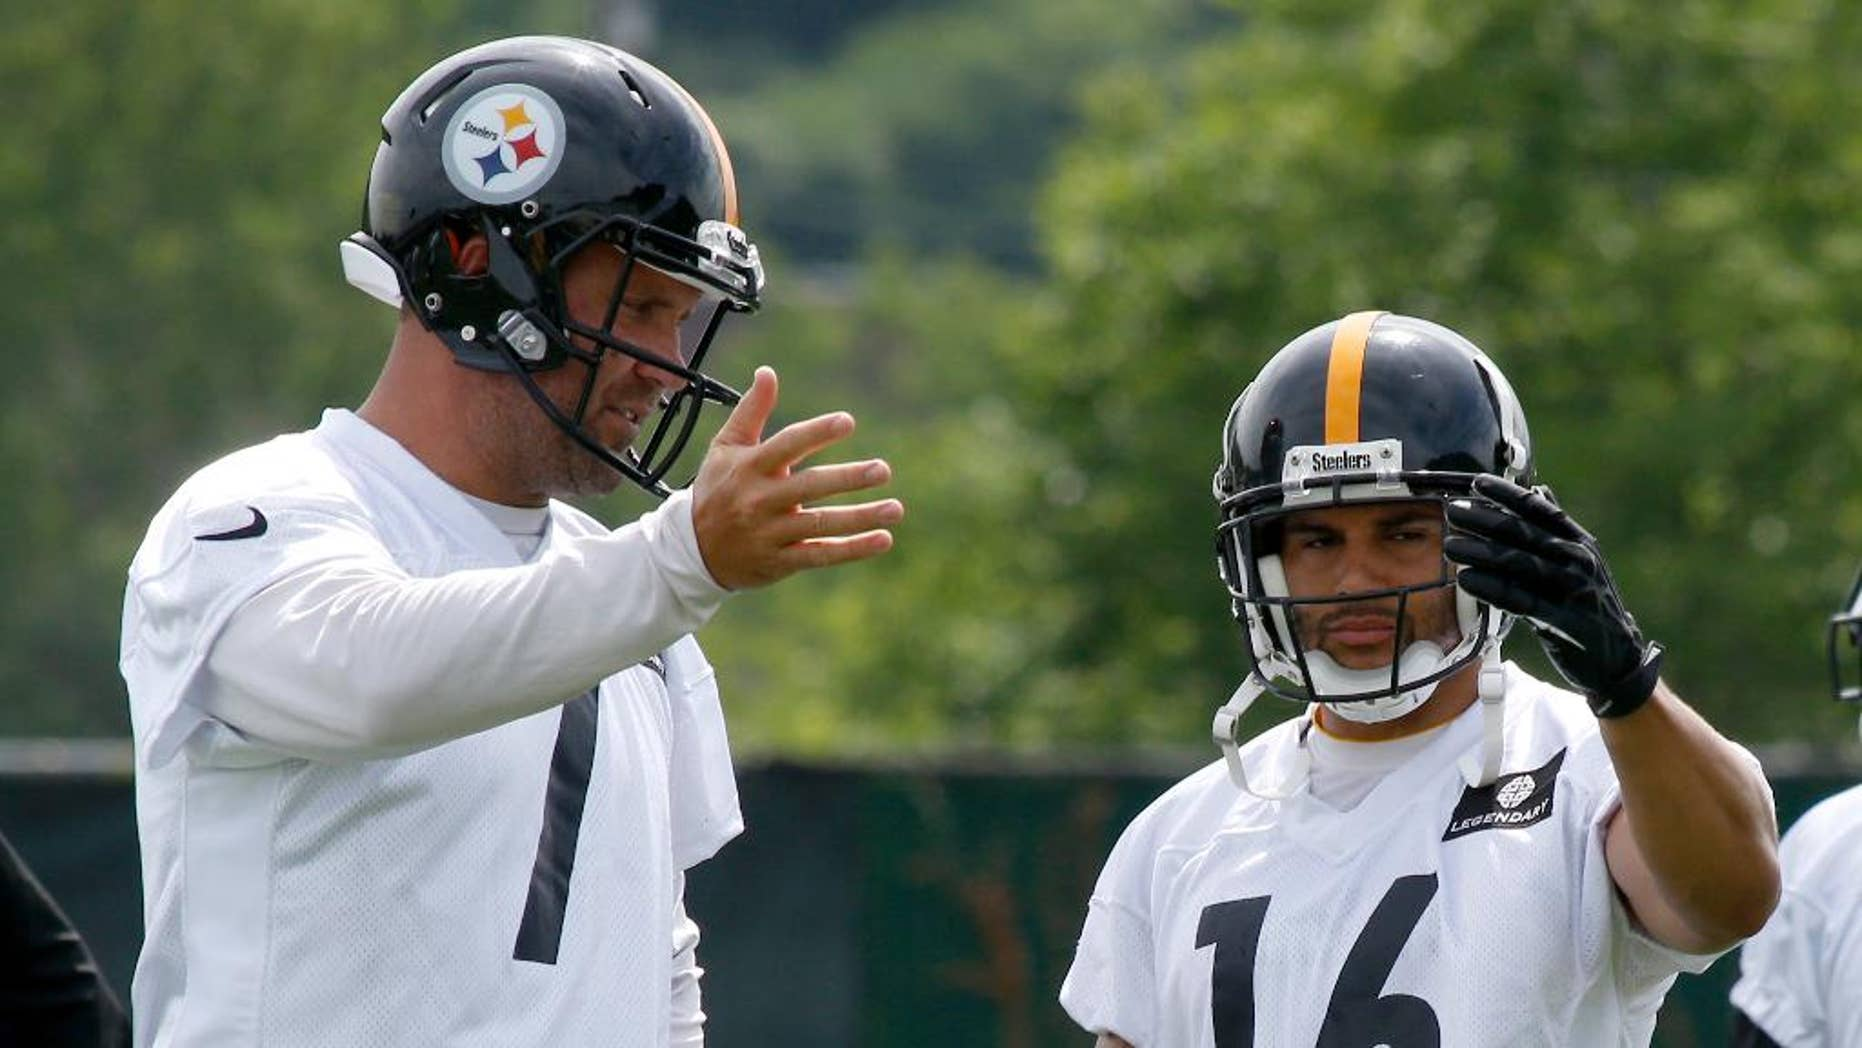 Pittsburgh Steelers quarterback Ben Roethlisberger (7) and wide receiver Lance Moore (16) talk about pass routes during an NFL football organized team activity on Wednesday, June 11, 2014 in Pittsburgh. (AP Photo/Keith Srakocic)